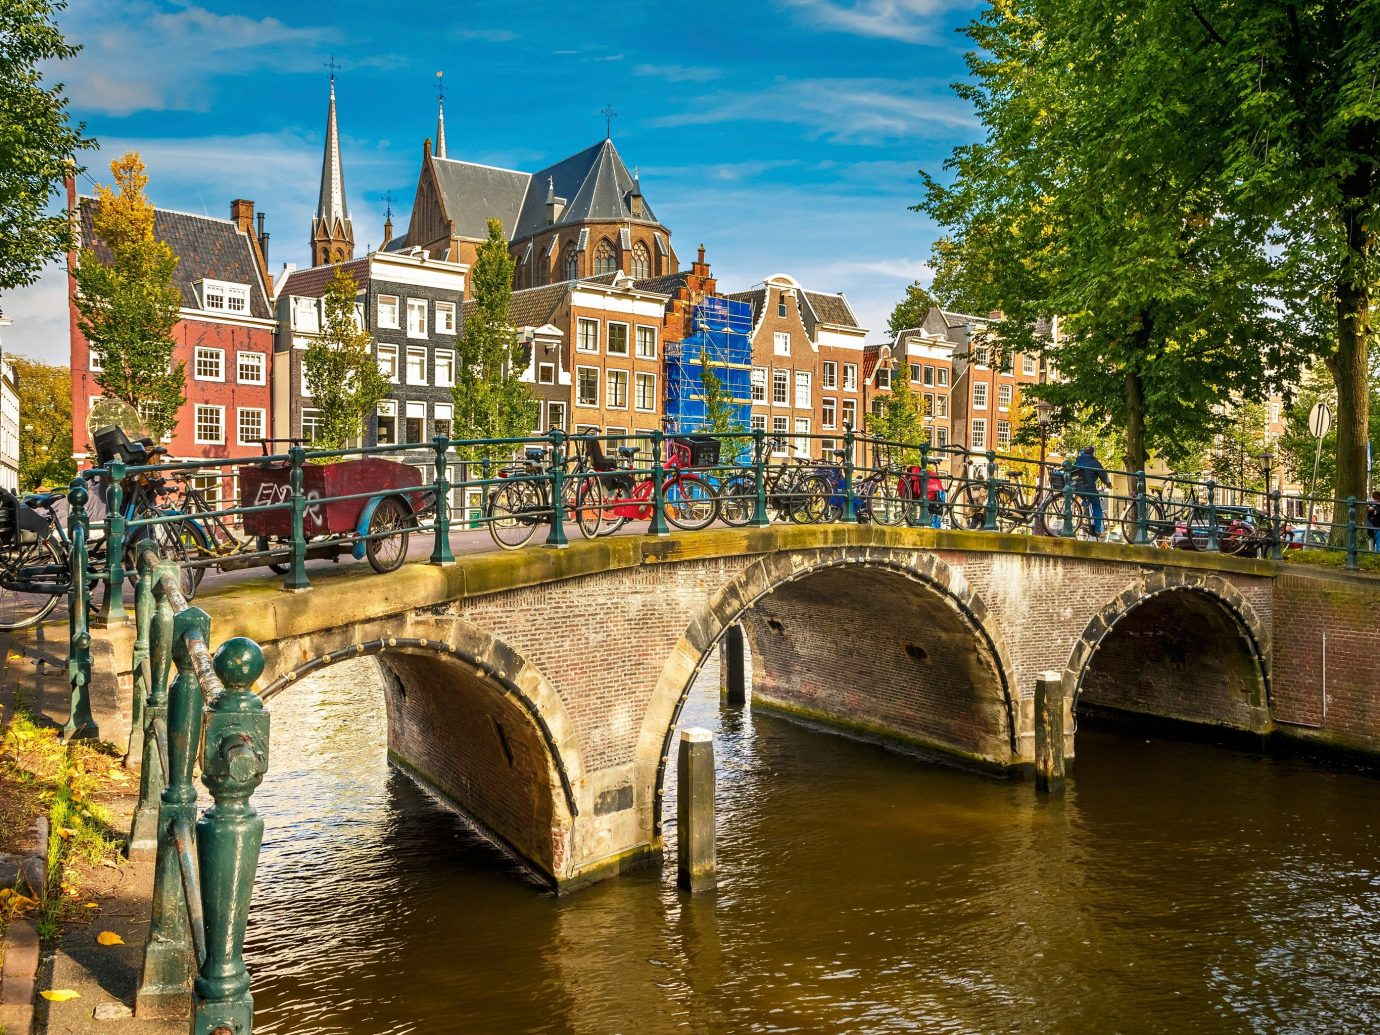 Travel Tips tree outdoor water Canal River landform geographical feature waterway body of water Town channel bridge cityscape